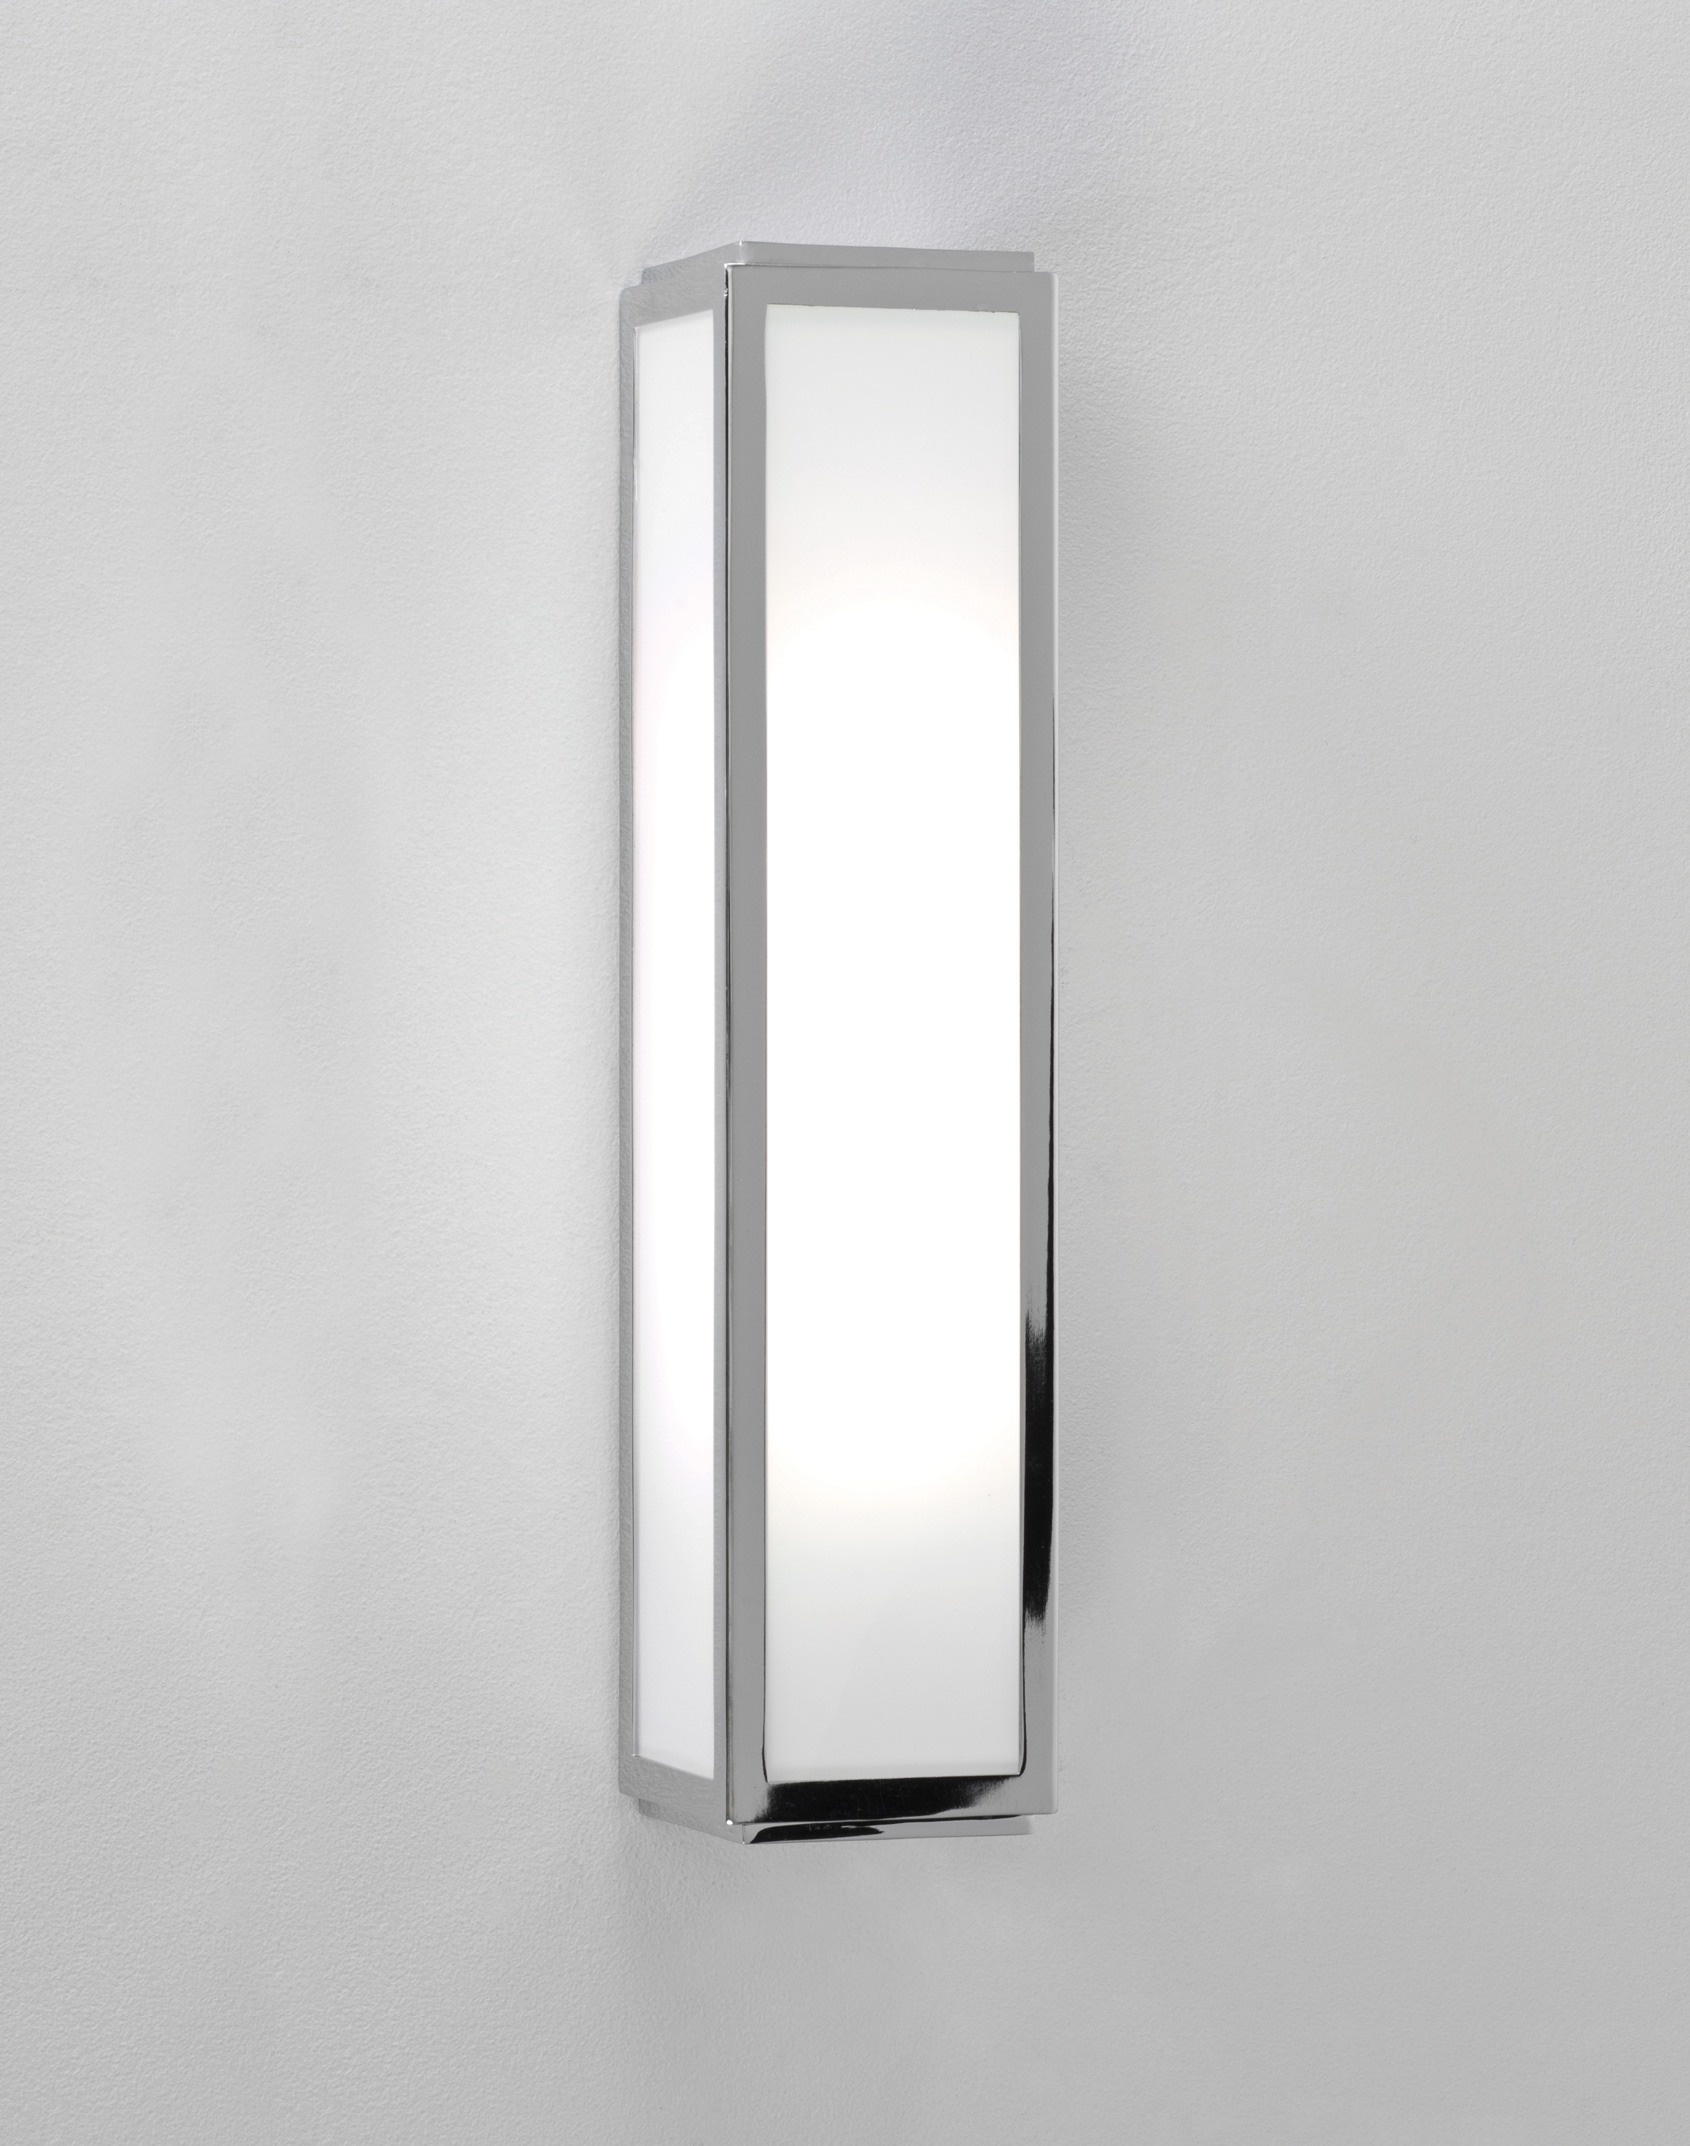 ASTRO MASHIKO 7099 Bathroom LED wall light 7.2W Samsung LED 3000K warm white Thumbnail 1